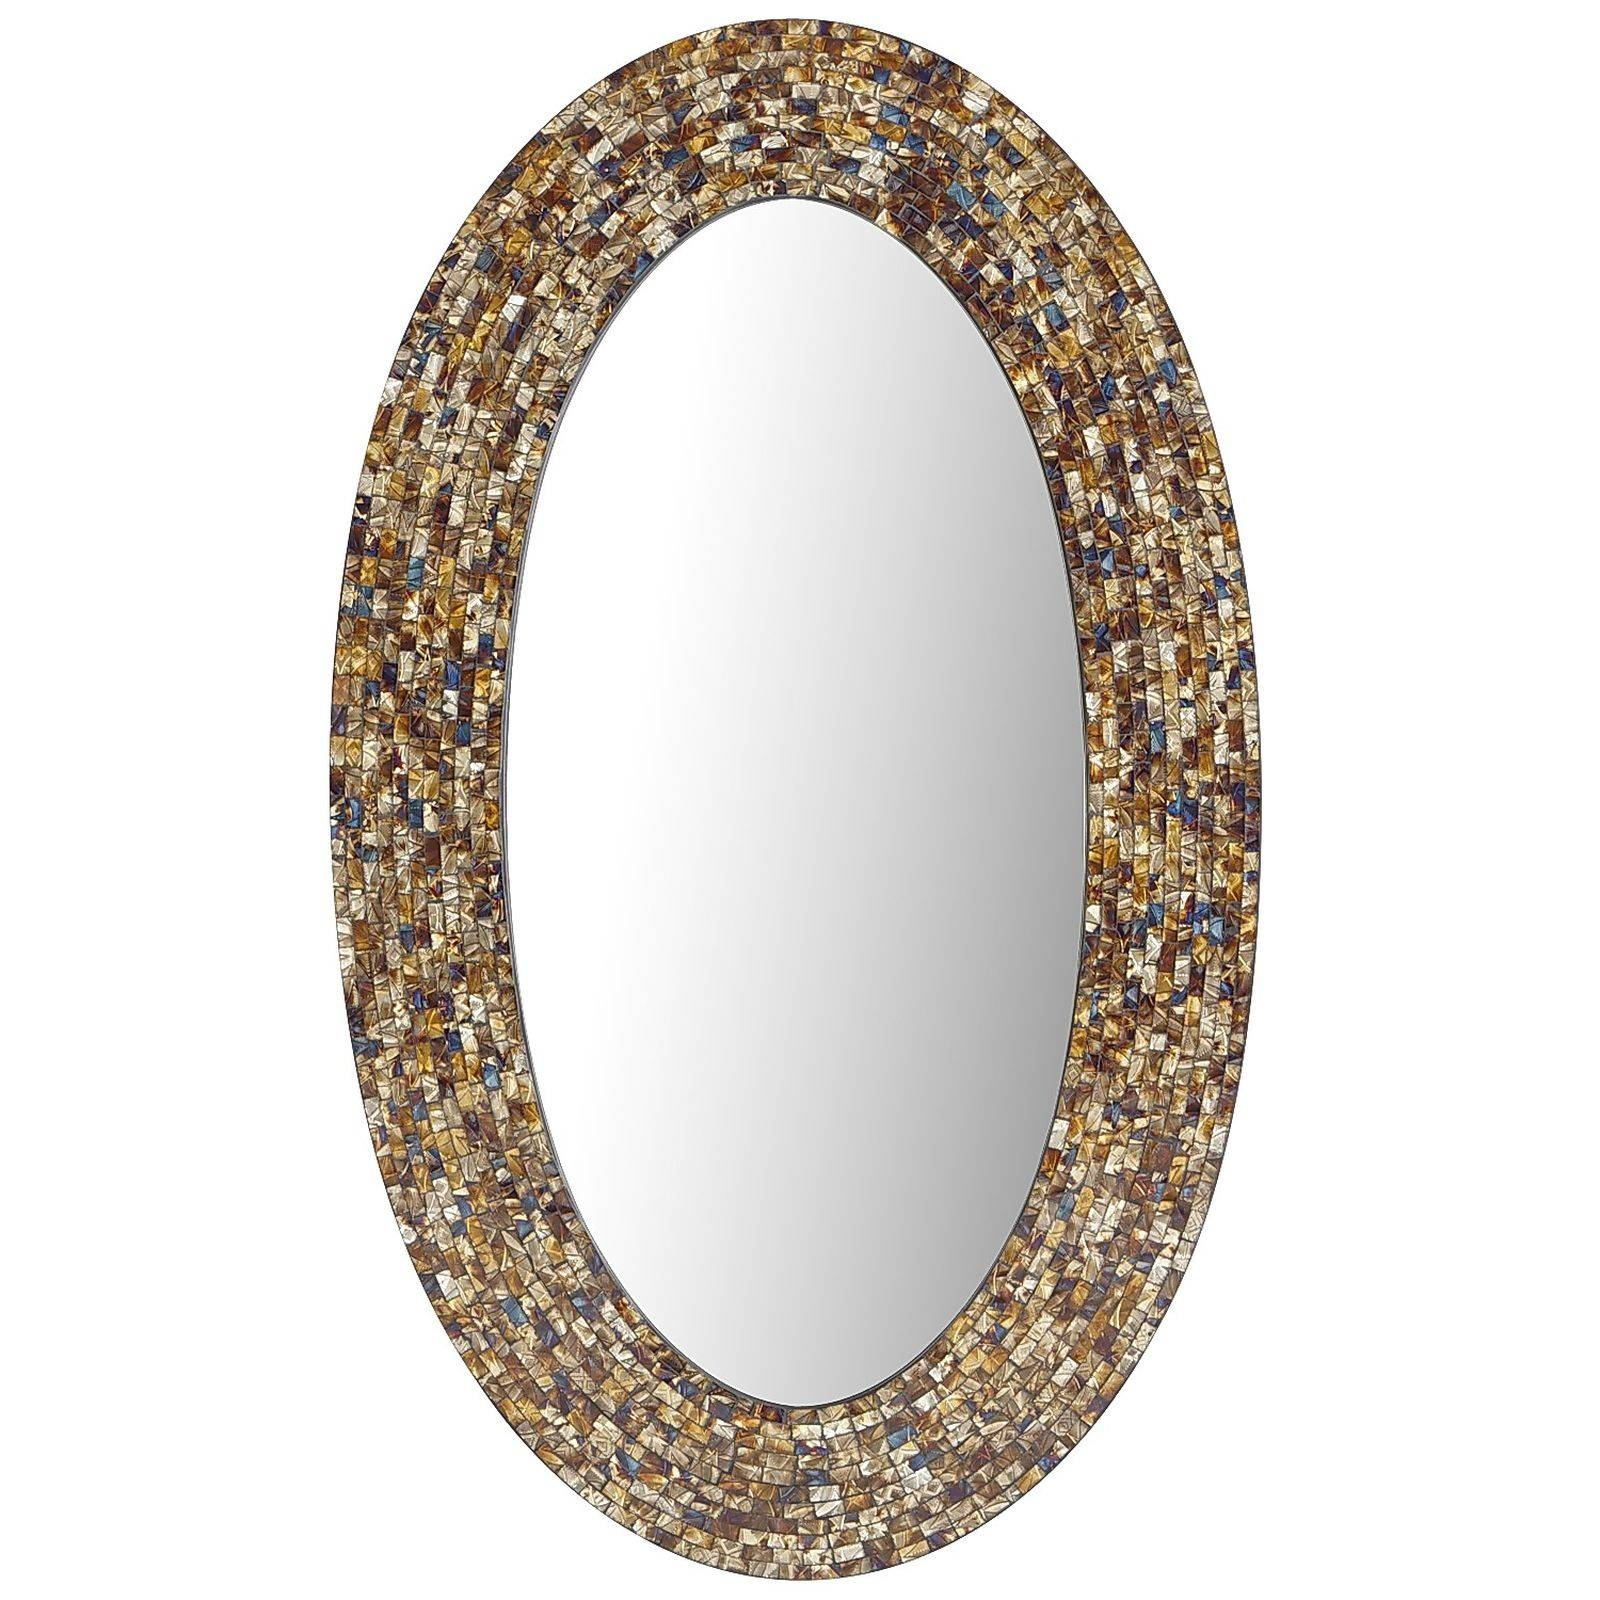 Long Oval Mirror Nanobuffet pertaining to Long Oval Mirrors (Image 6 of 15)